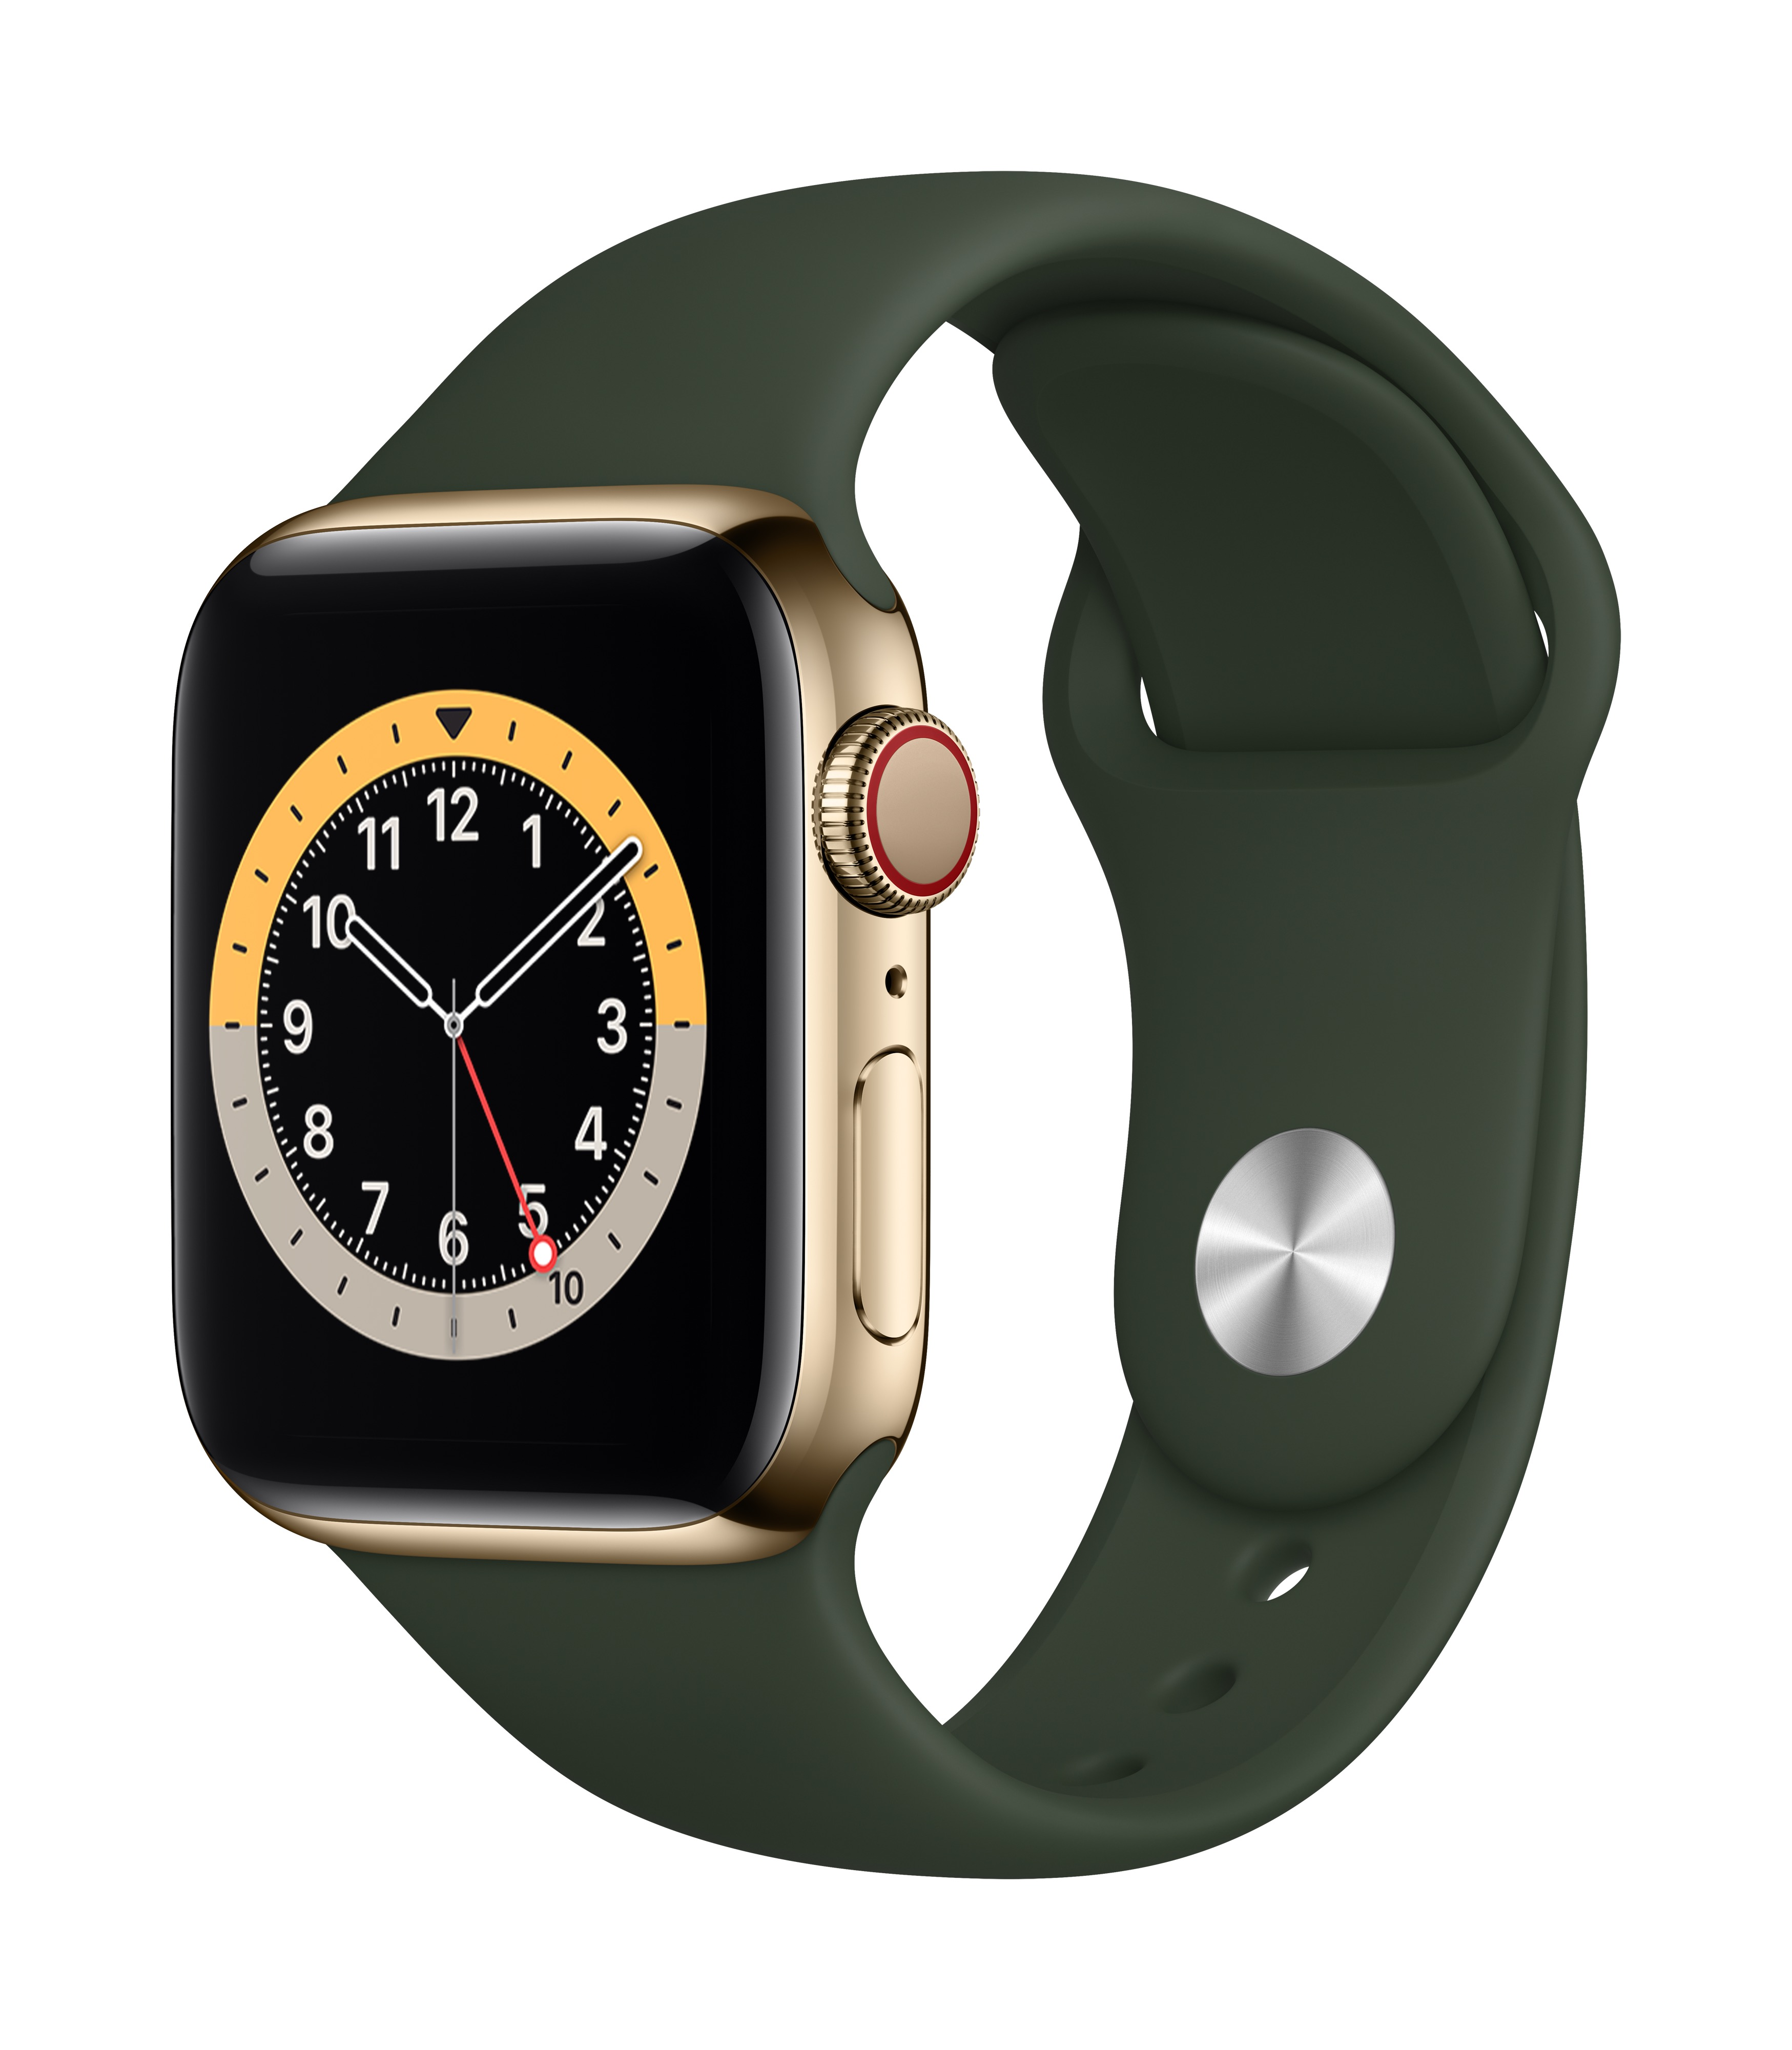 Apple_Watch_Series_6_Cellular_40mm_Gold_Stainless_Cyprus_Green_Sport_Band_34R_Screen__USEN